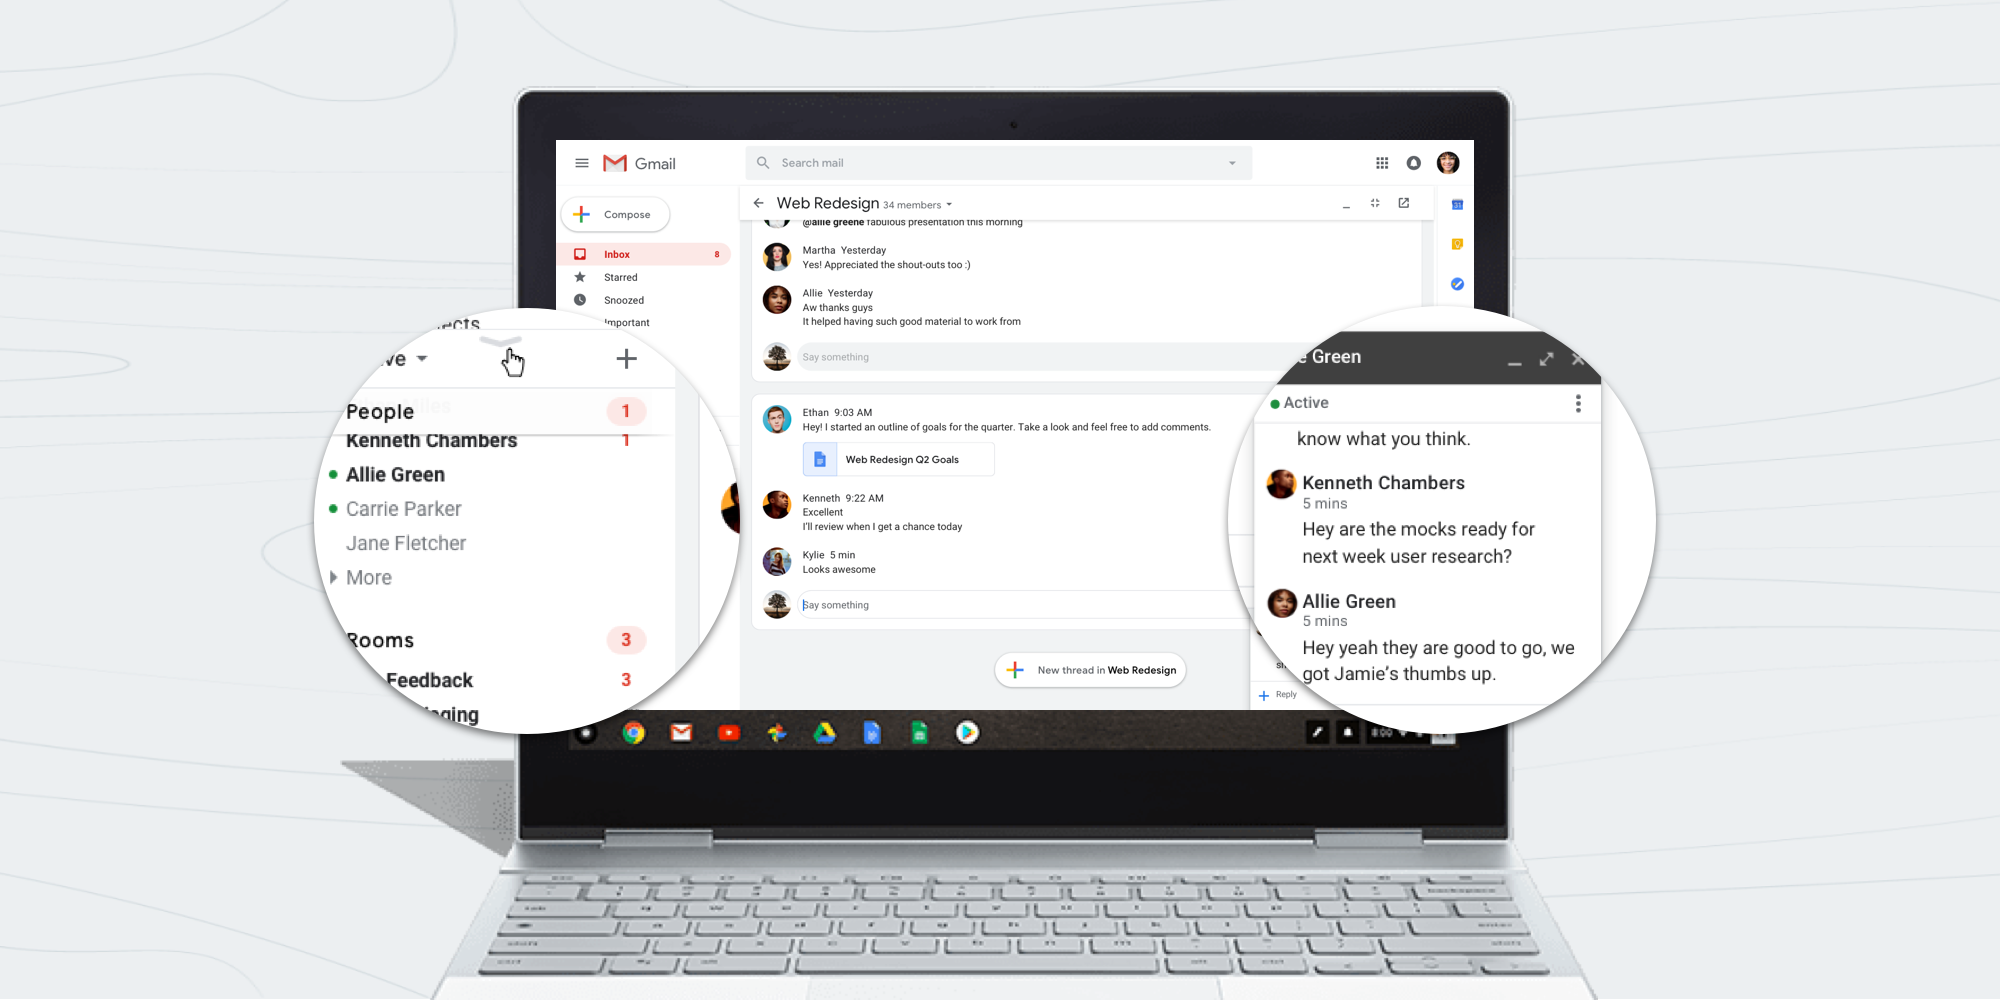 Google details new Hangouts Chat features coming soon